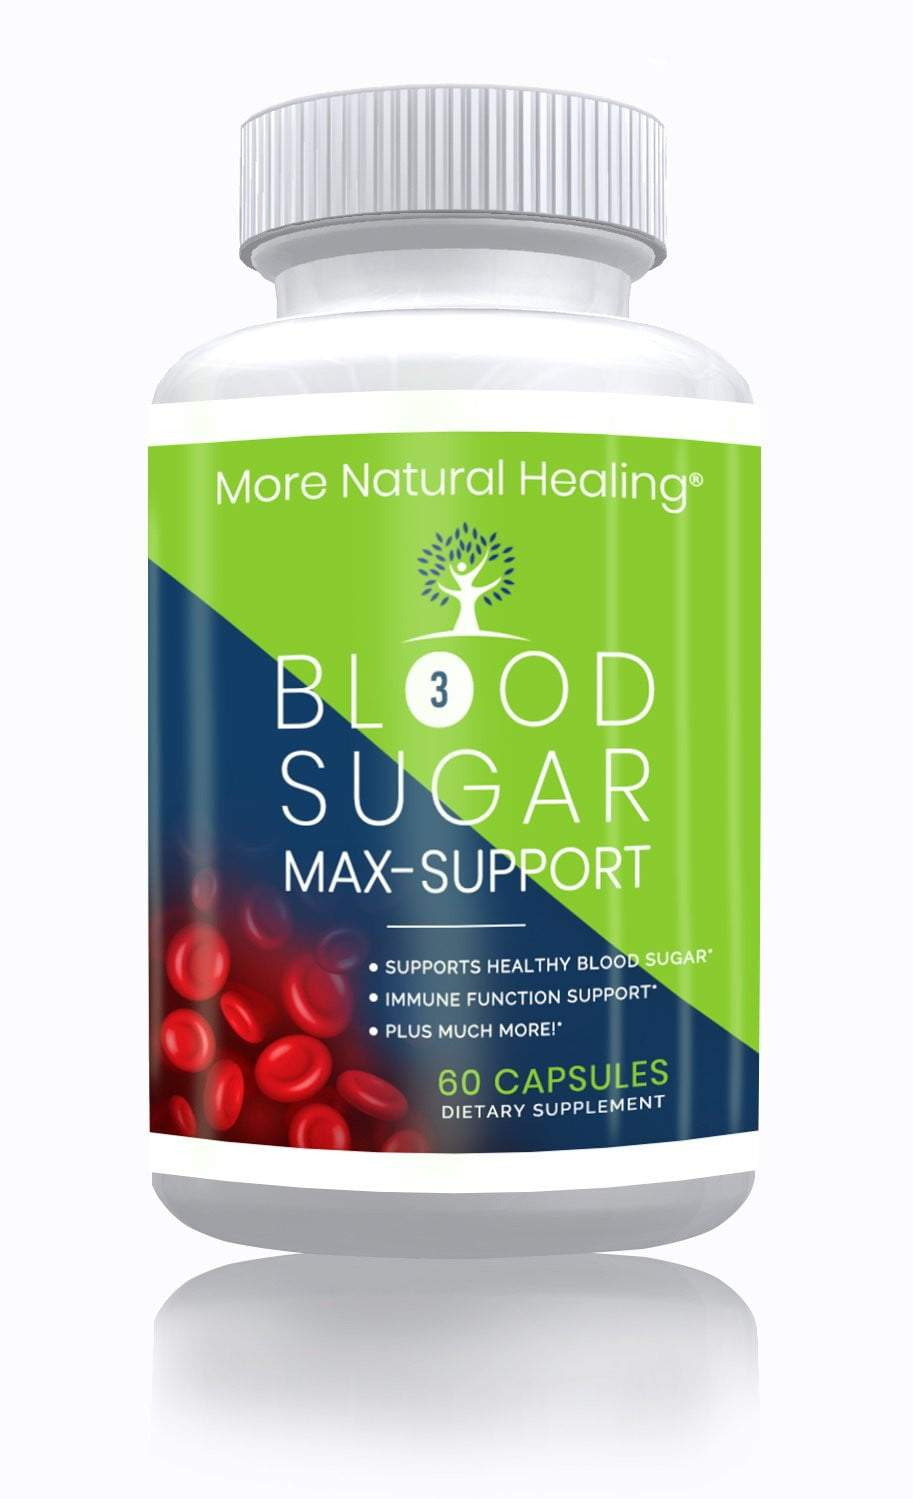 Blood Sugar Max Support - More Natural Healing